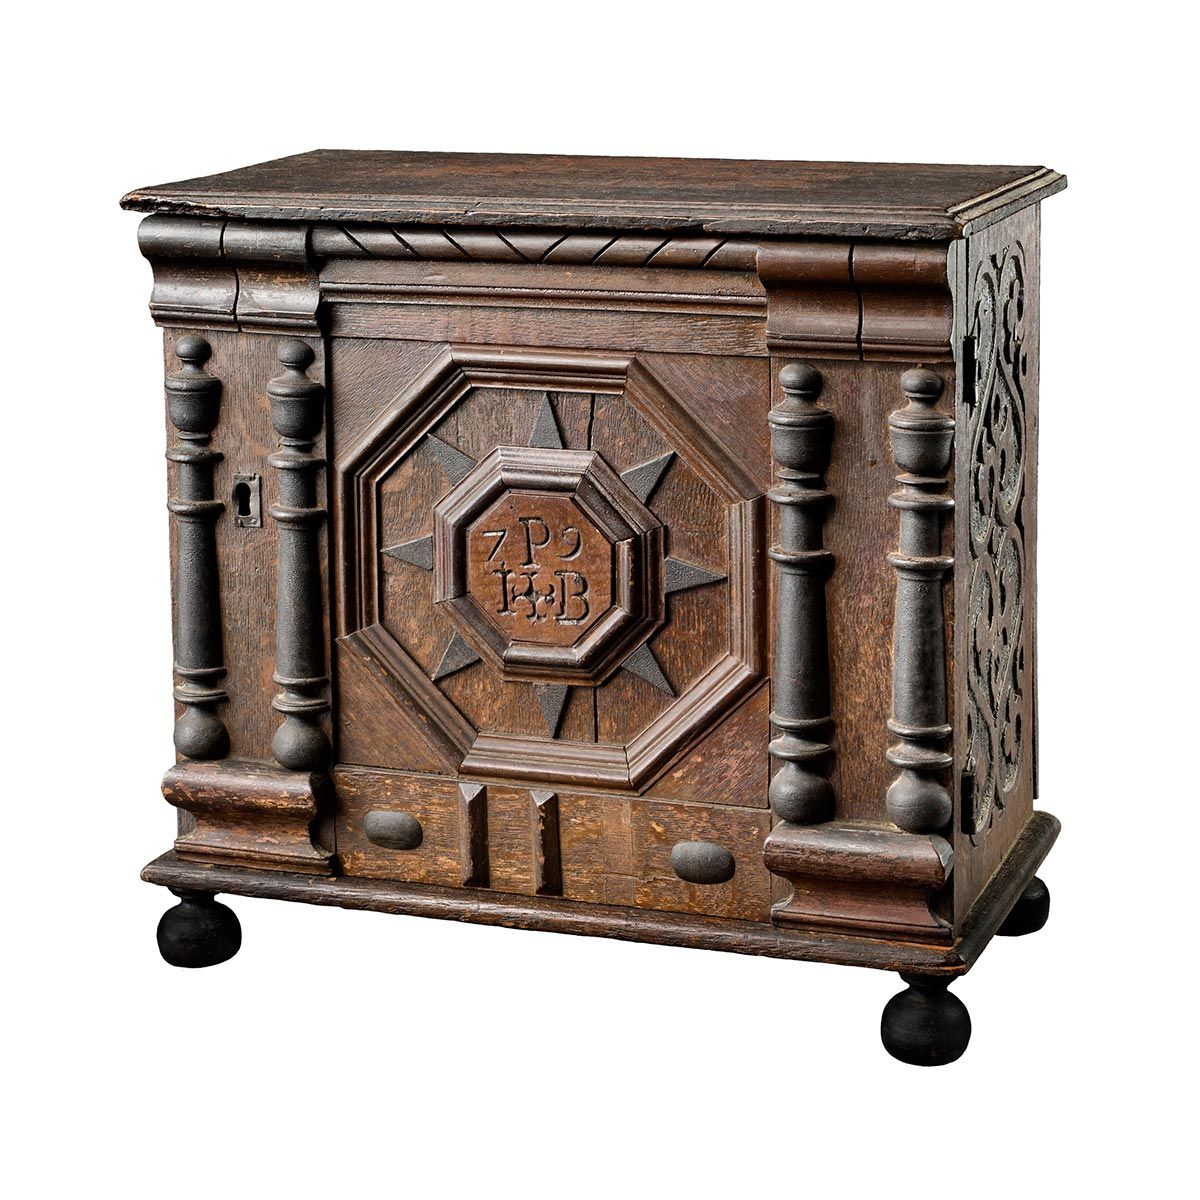 Four Centuries of Massachusetts Furniture - Furniture Highlights Four Centuries Early American Furniture